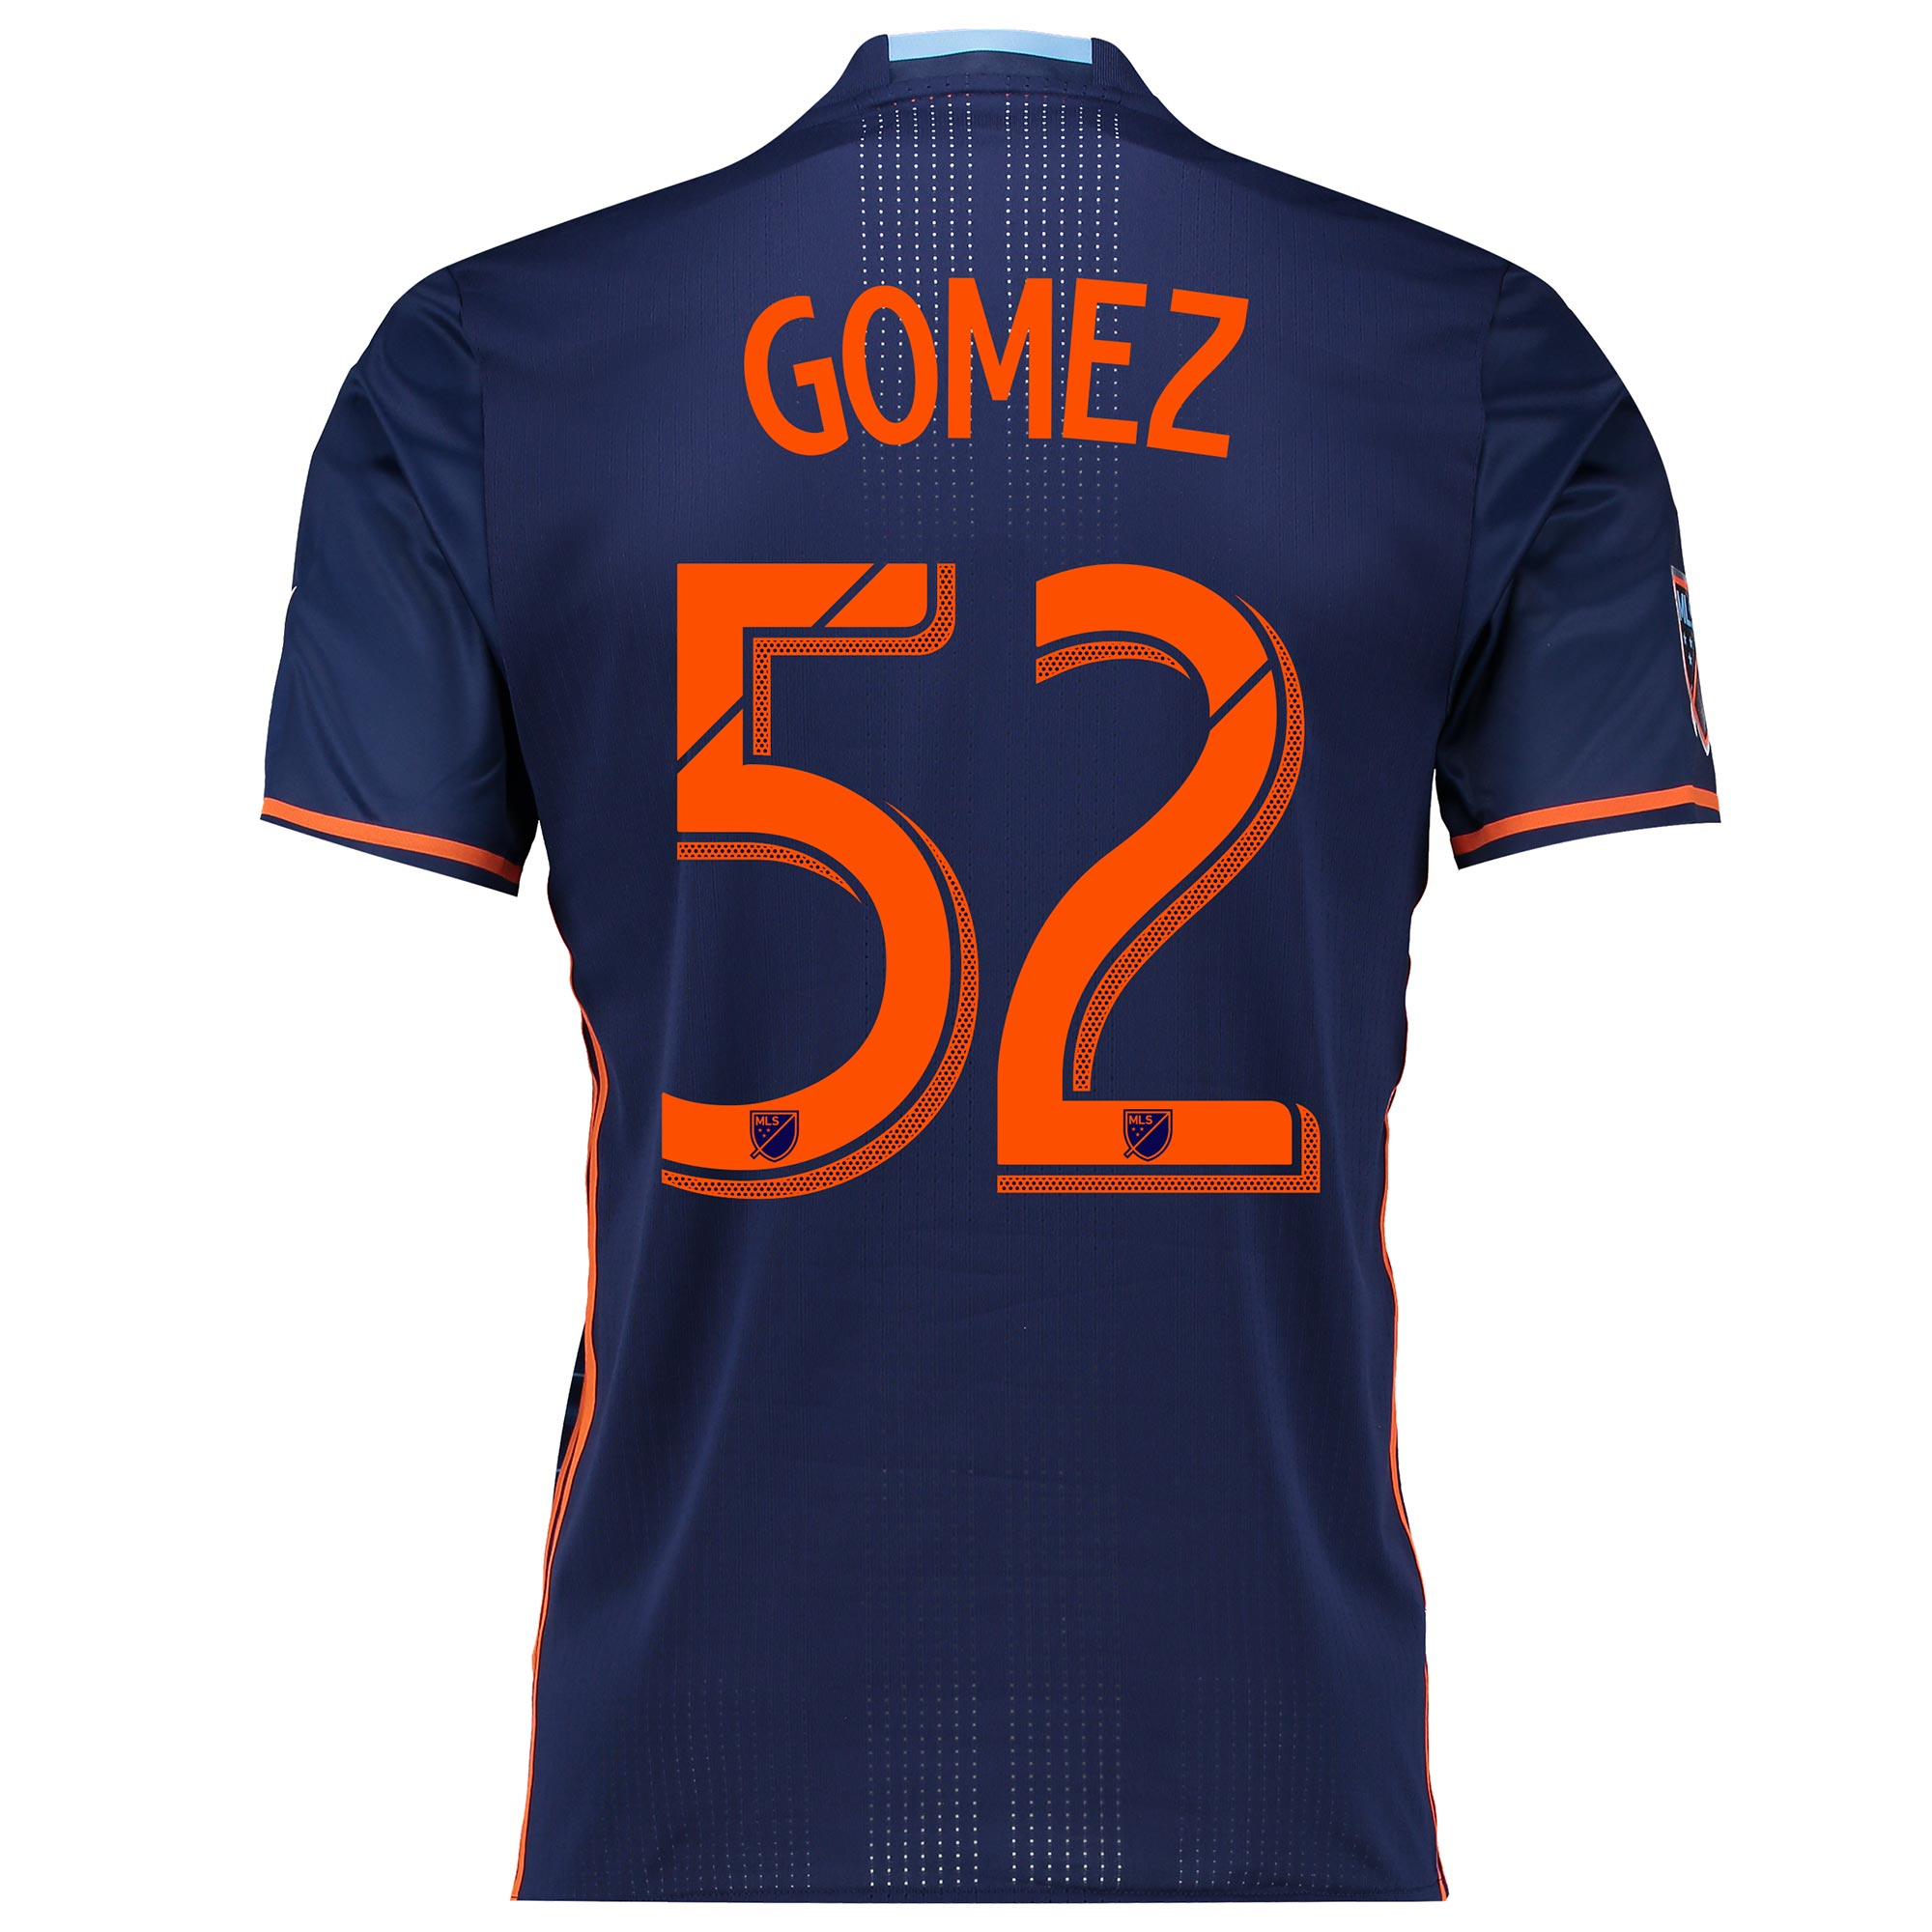 New York City FC Authentic Away Shirt 2016 with Gomez 52 printing